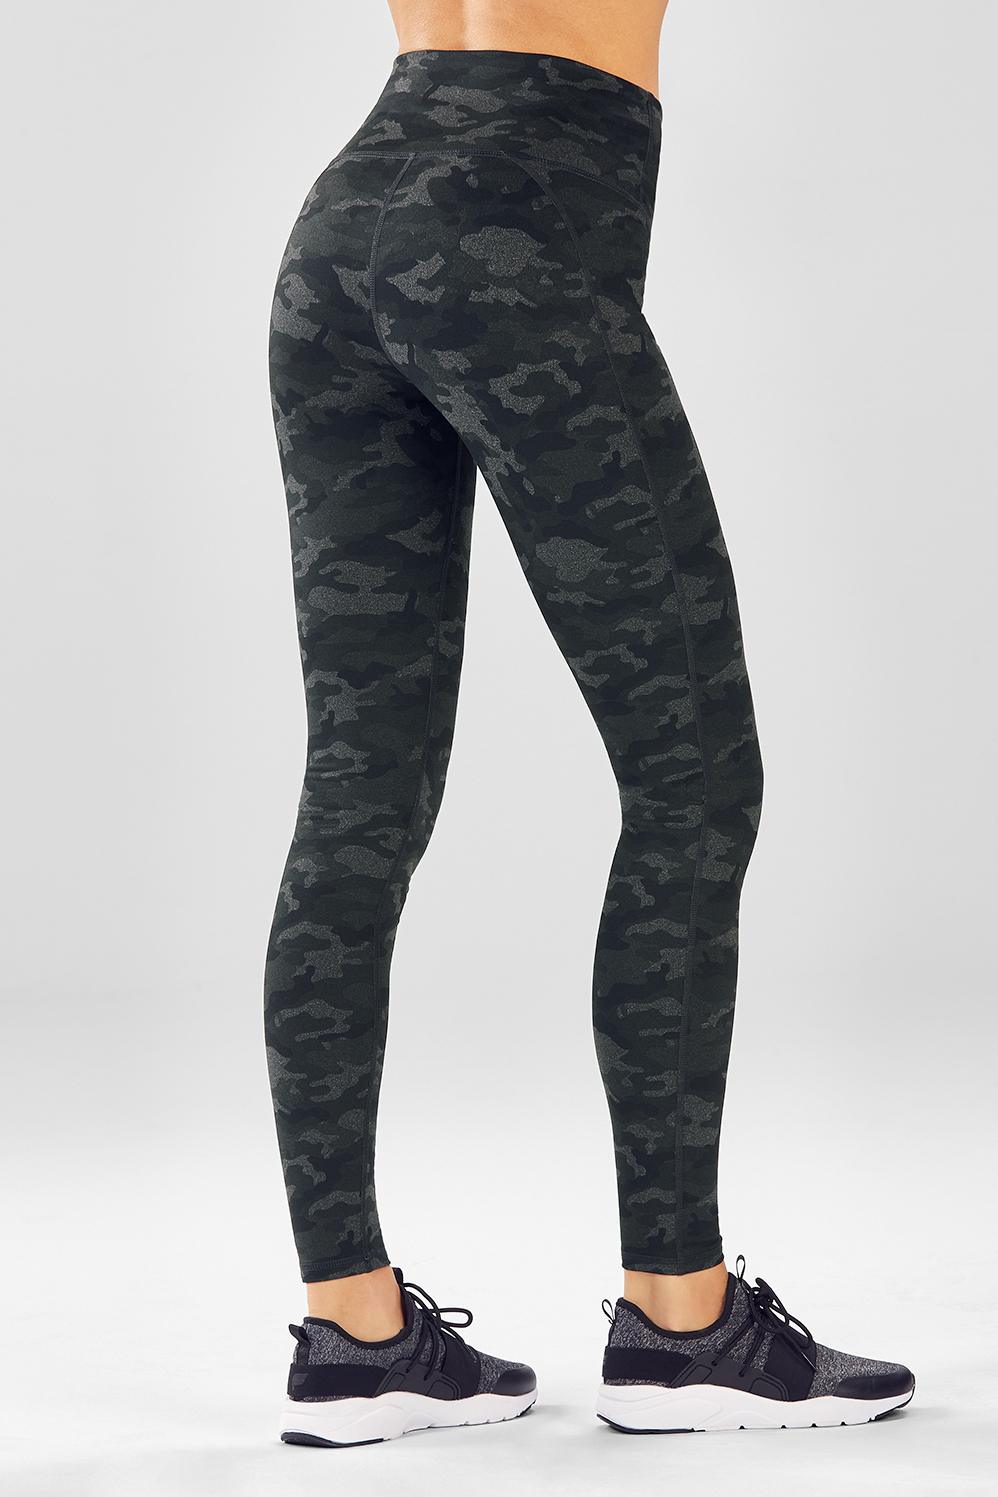 2df32cda174d5 High-Waisted Printed Powerhold® Legging - Charcoal Camo